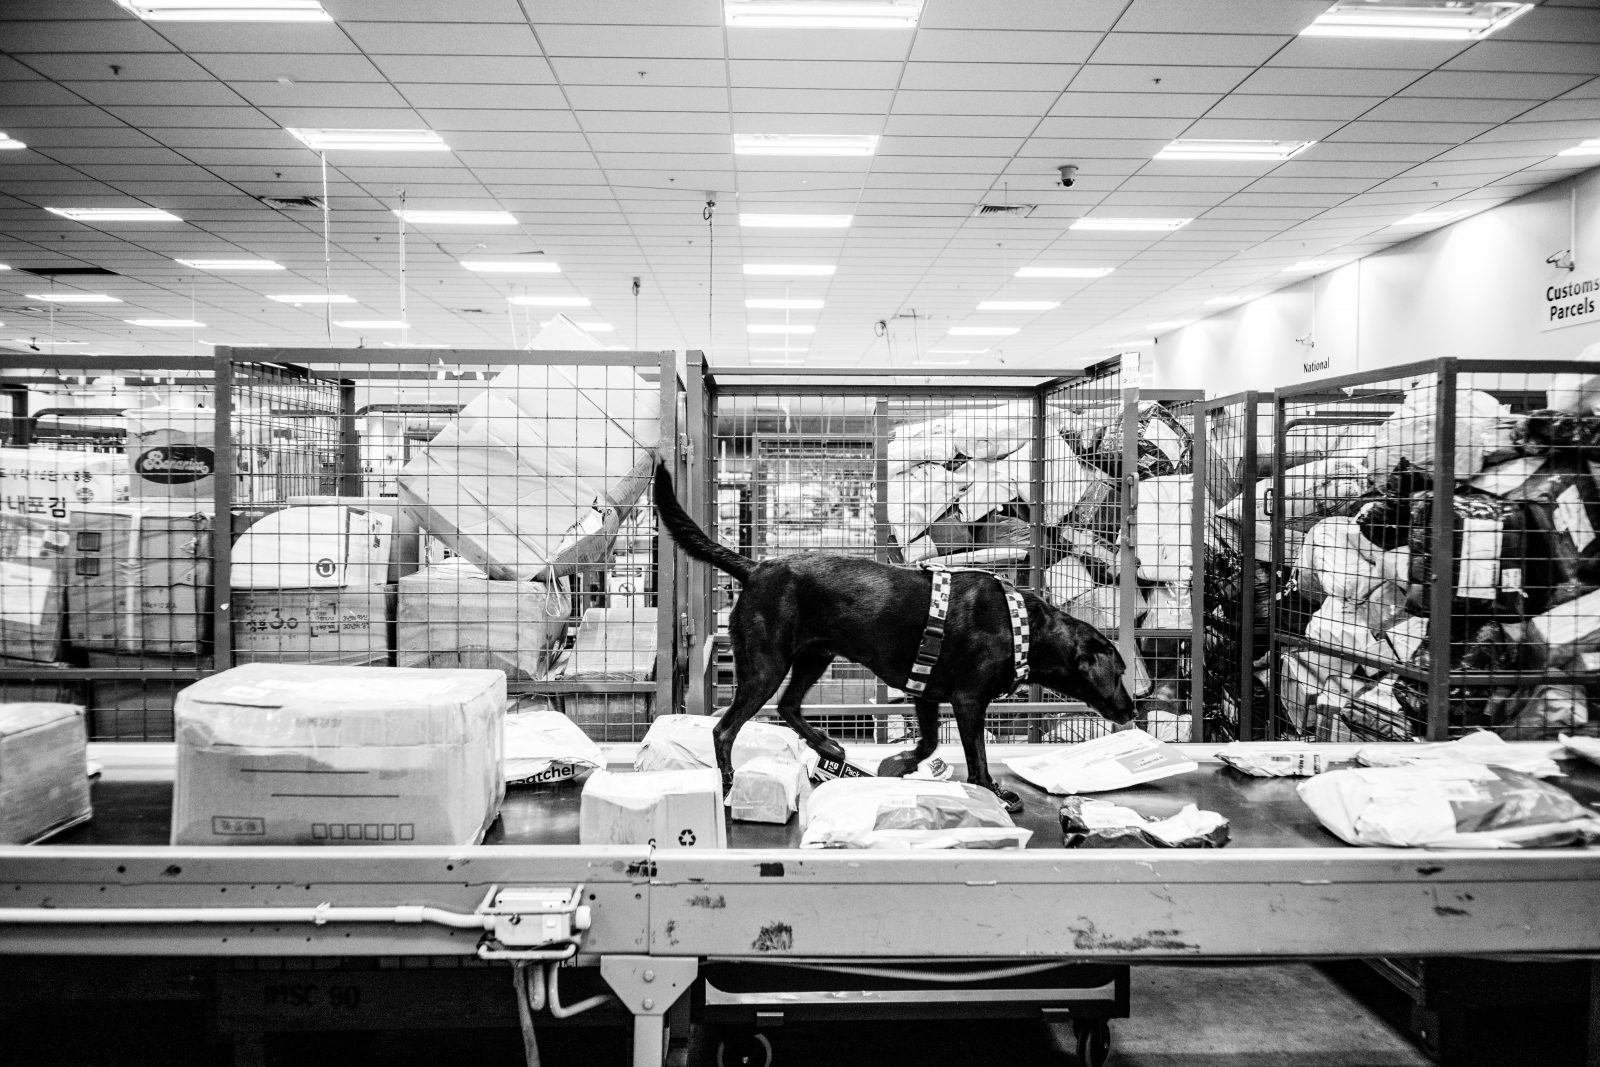 A Customs Service drug detection dog investigates mail arriving from China. Over 1,000,000 letters and packages rumble down the international mail belt at Auckland Airport each week. In 2015 Customs officers seized a record 283 kilograms of methamphetamine at the border and nearly a tonne of the precursors for meth.